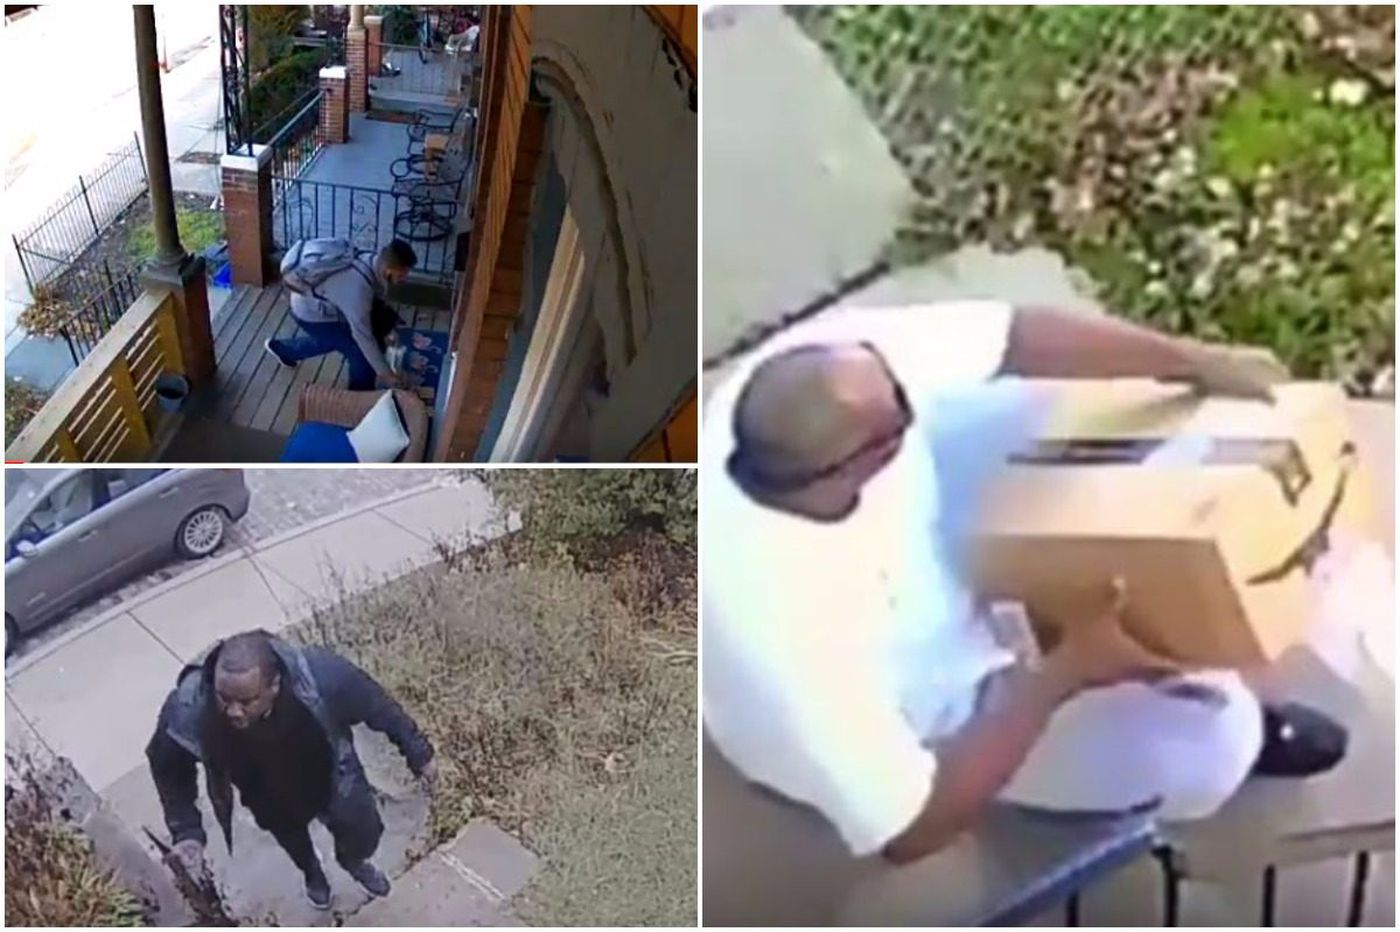 A beer-can decoy and random acts of kindness: How Philly combats package thefts